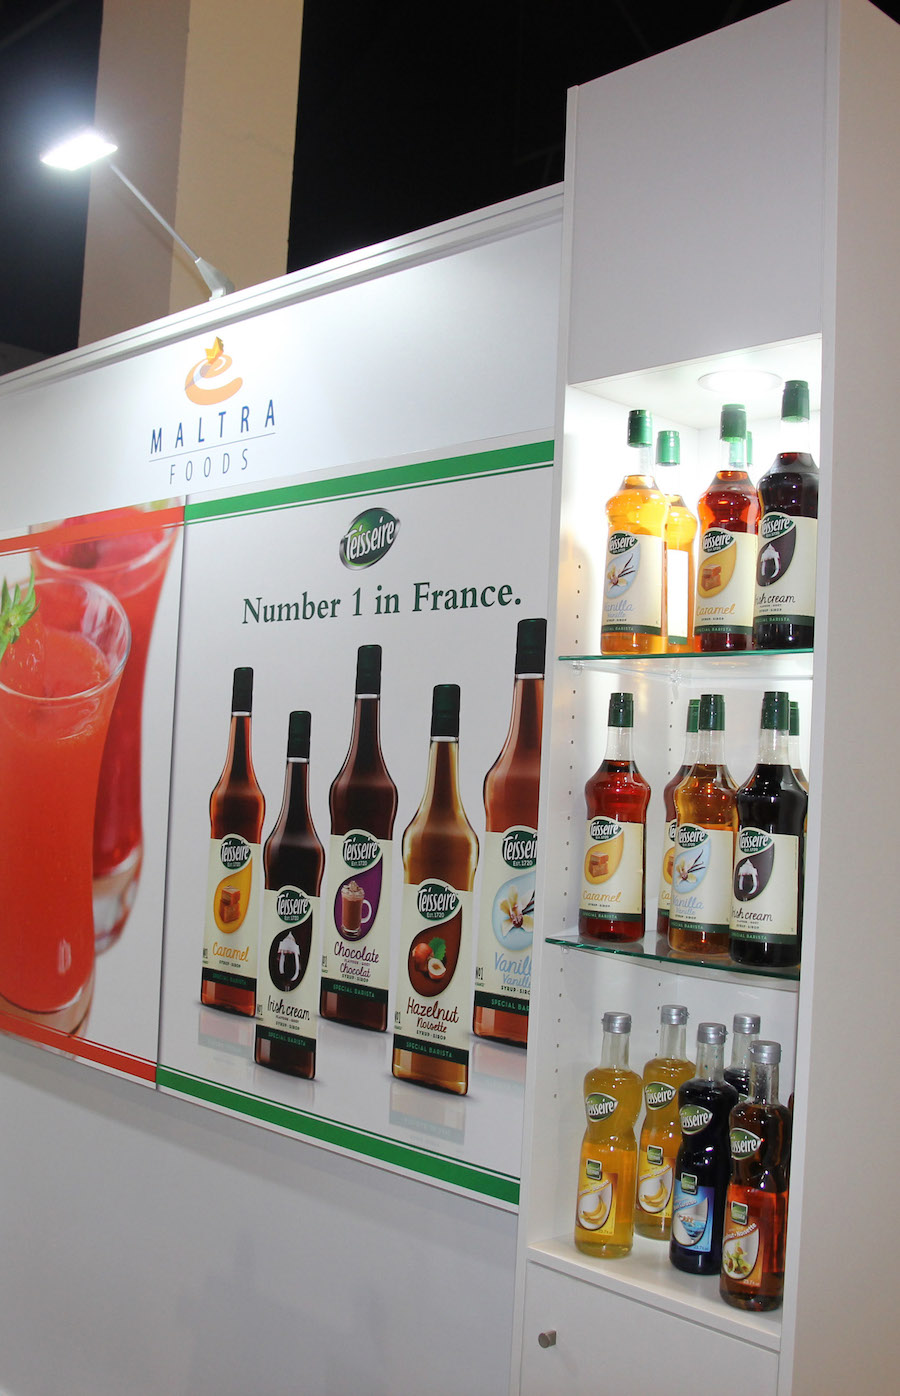 360-display-retail-expo-systems-stands-hire-designers-sydney-melbourne-newcastle-gold-coast-brisbane-Maltra-Foods-2.jpg